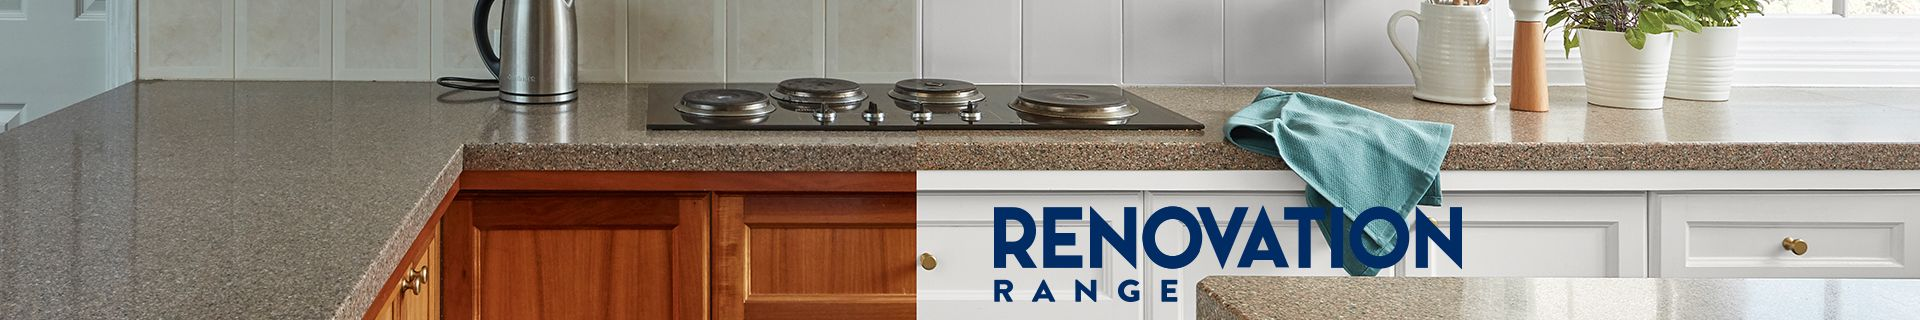 """Before and after of a kitchen renovation. """"Renovation range"""""""